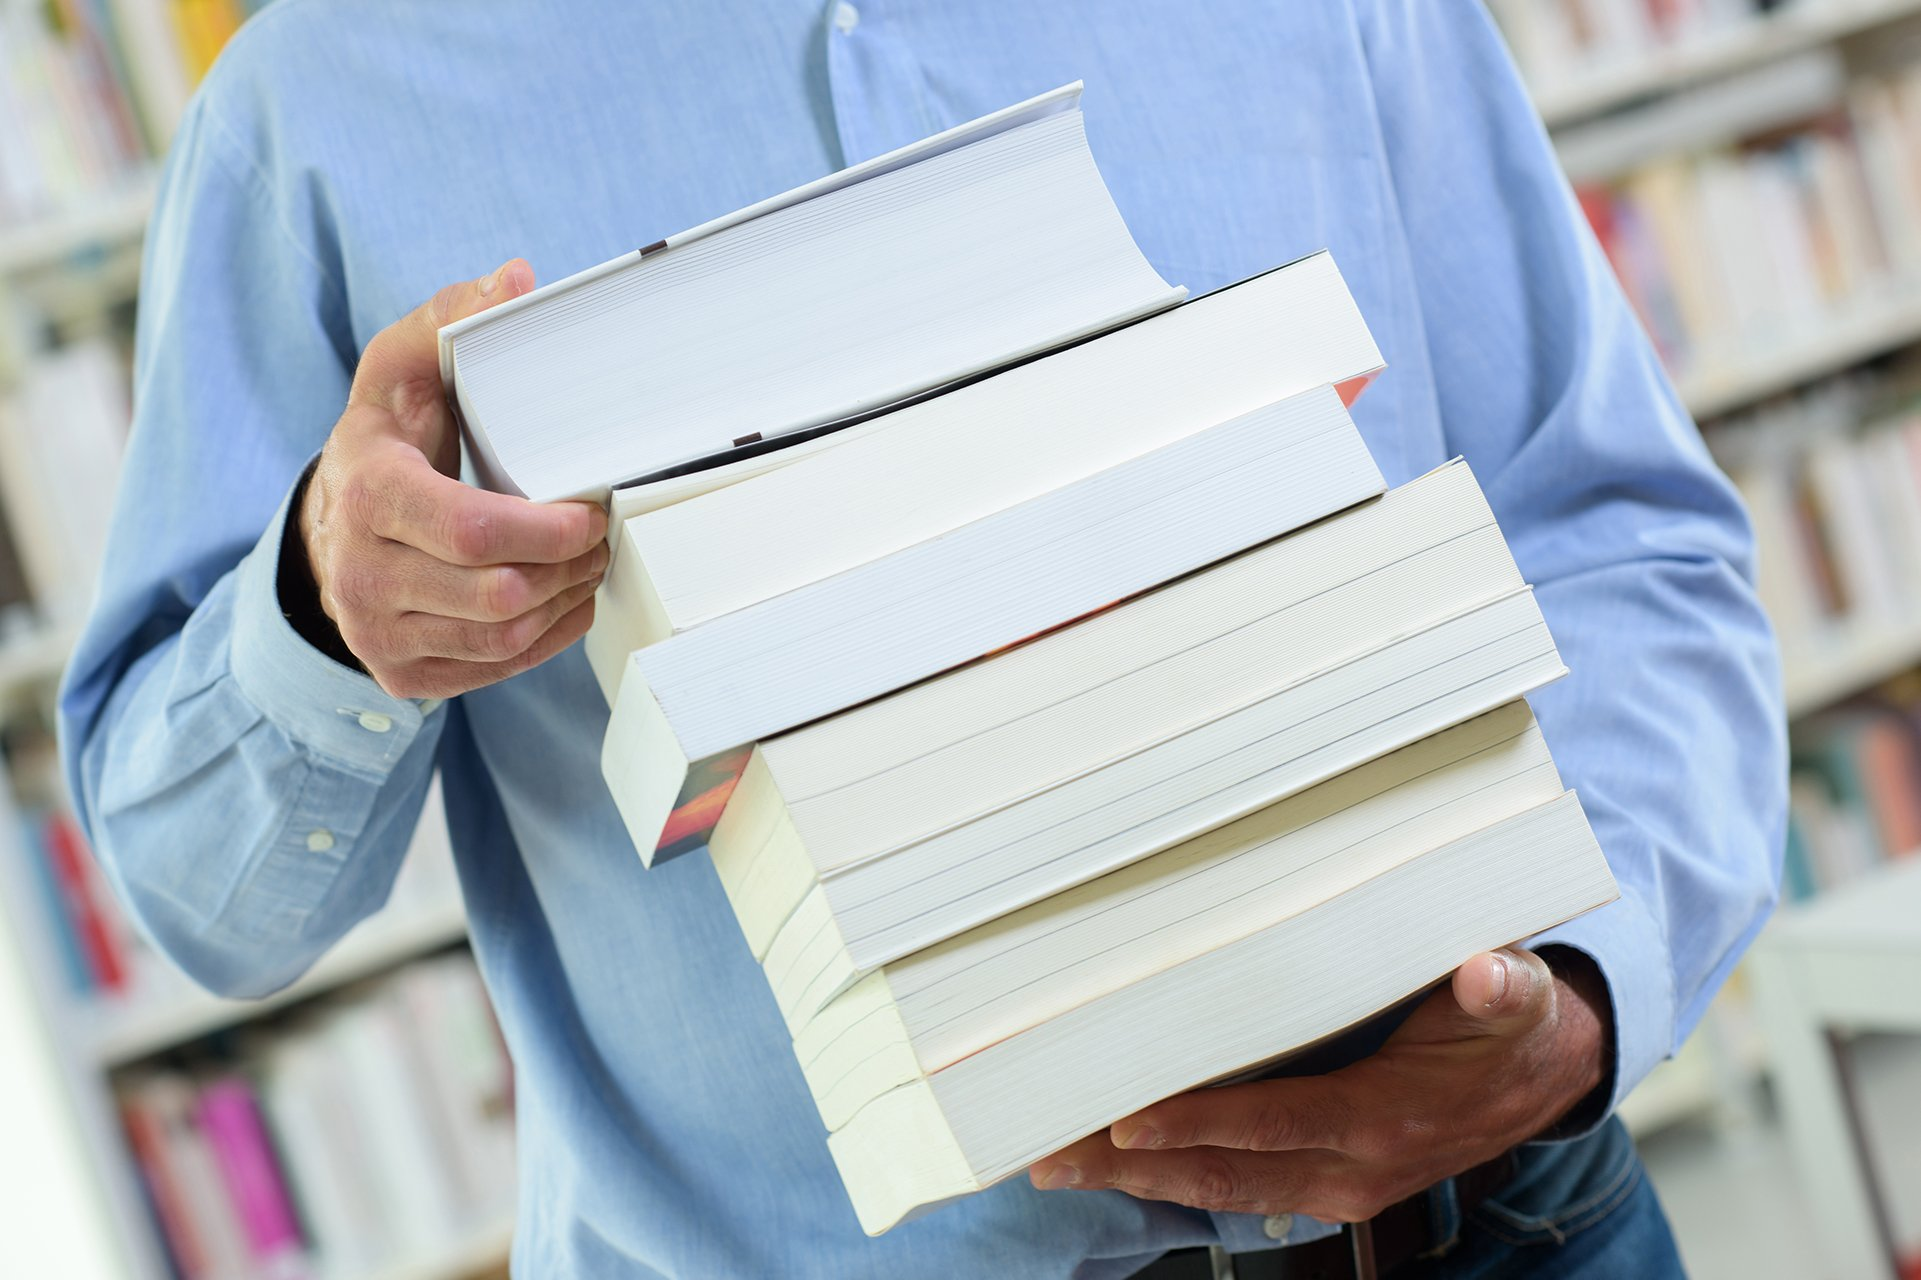 5 Best Business Books for Architects